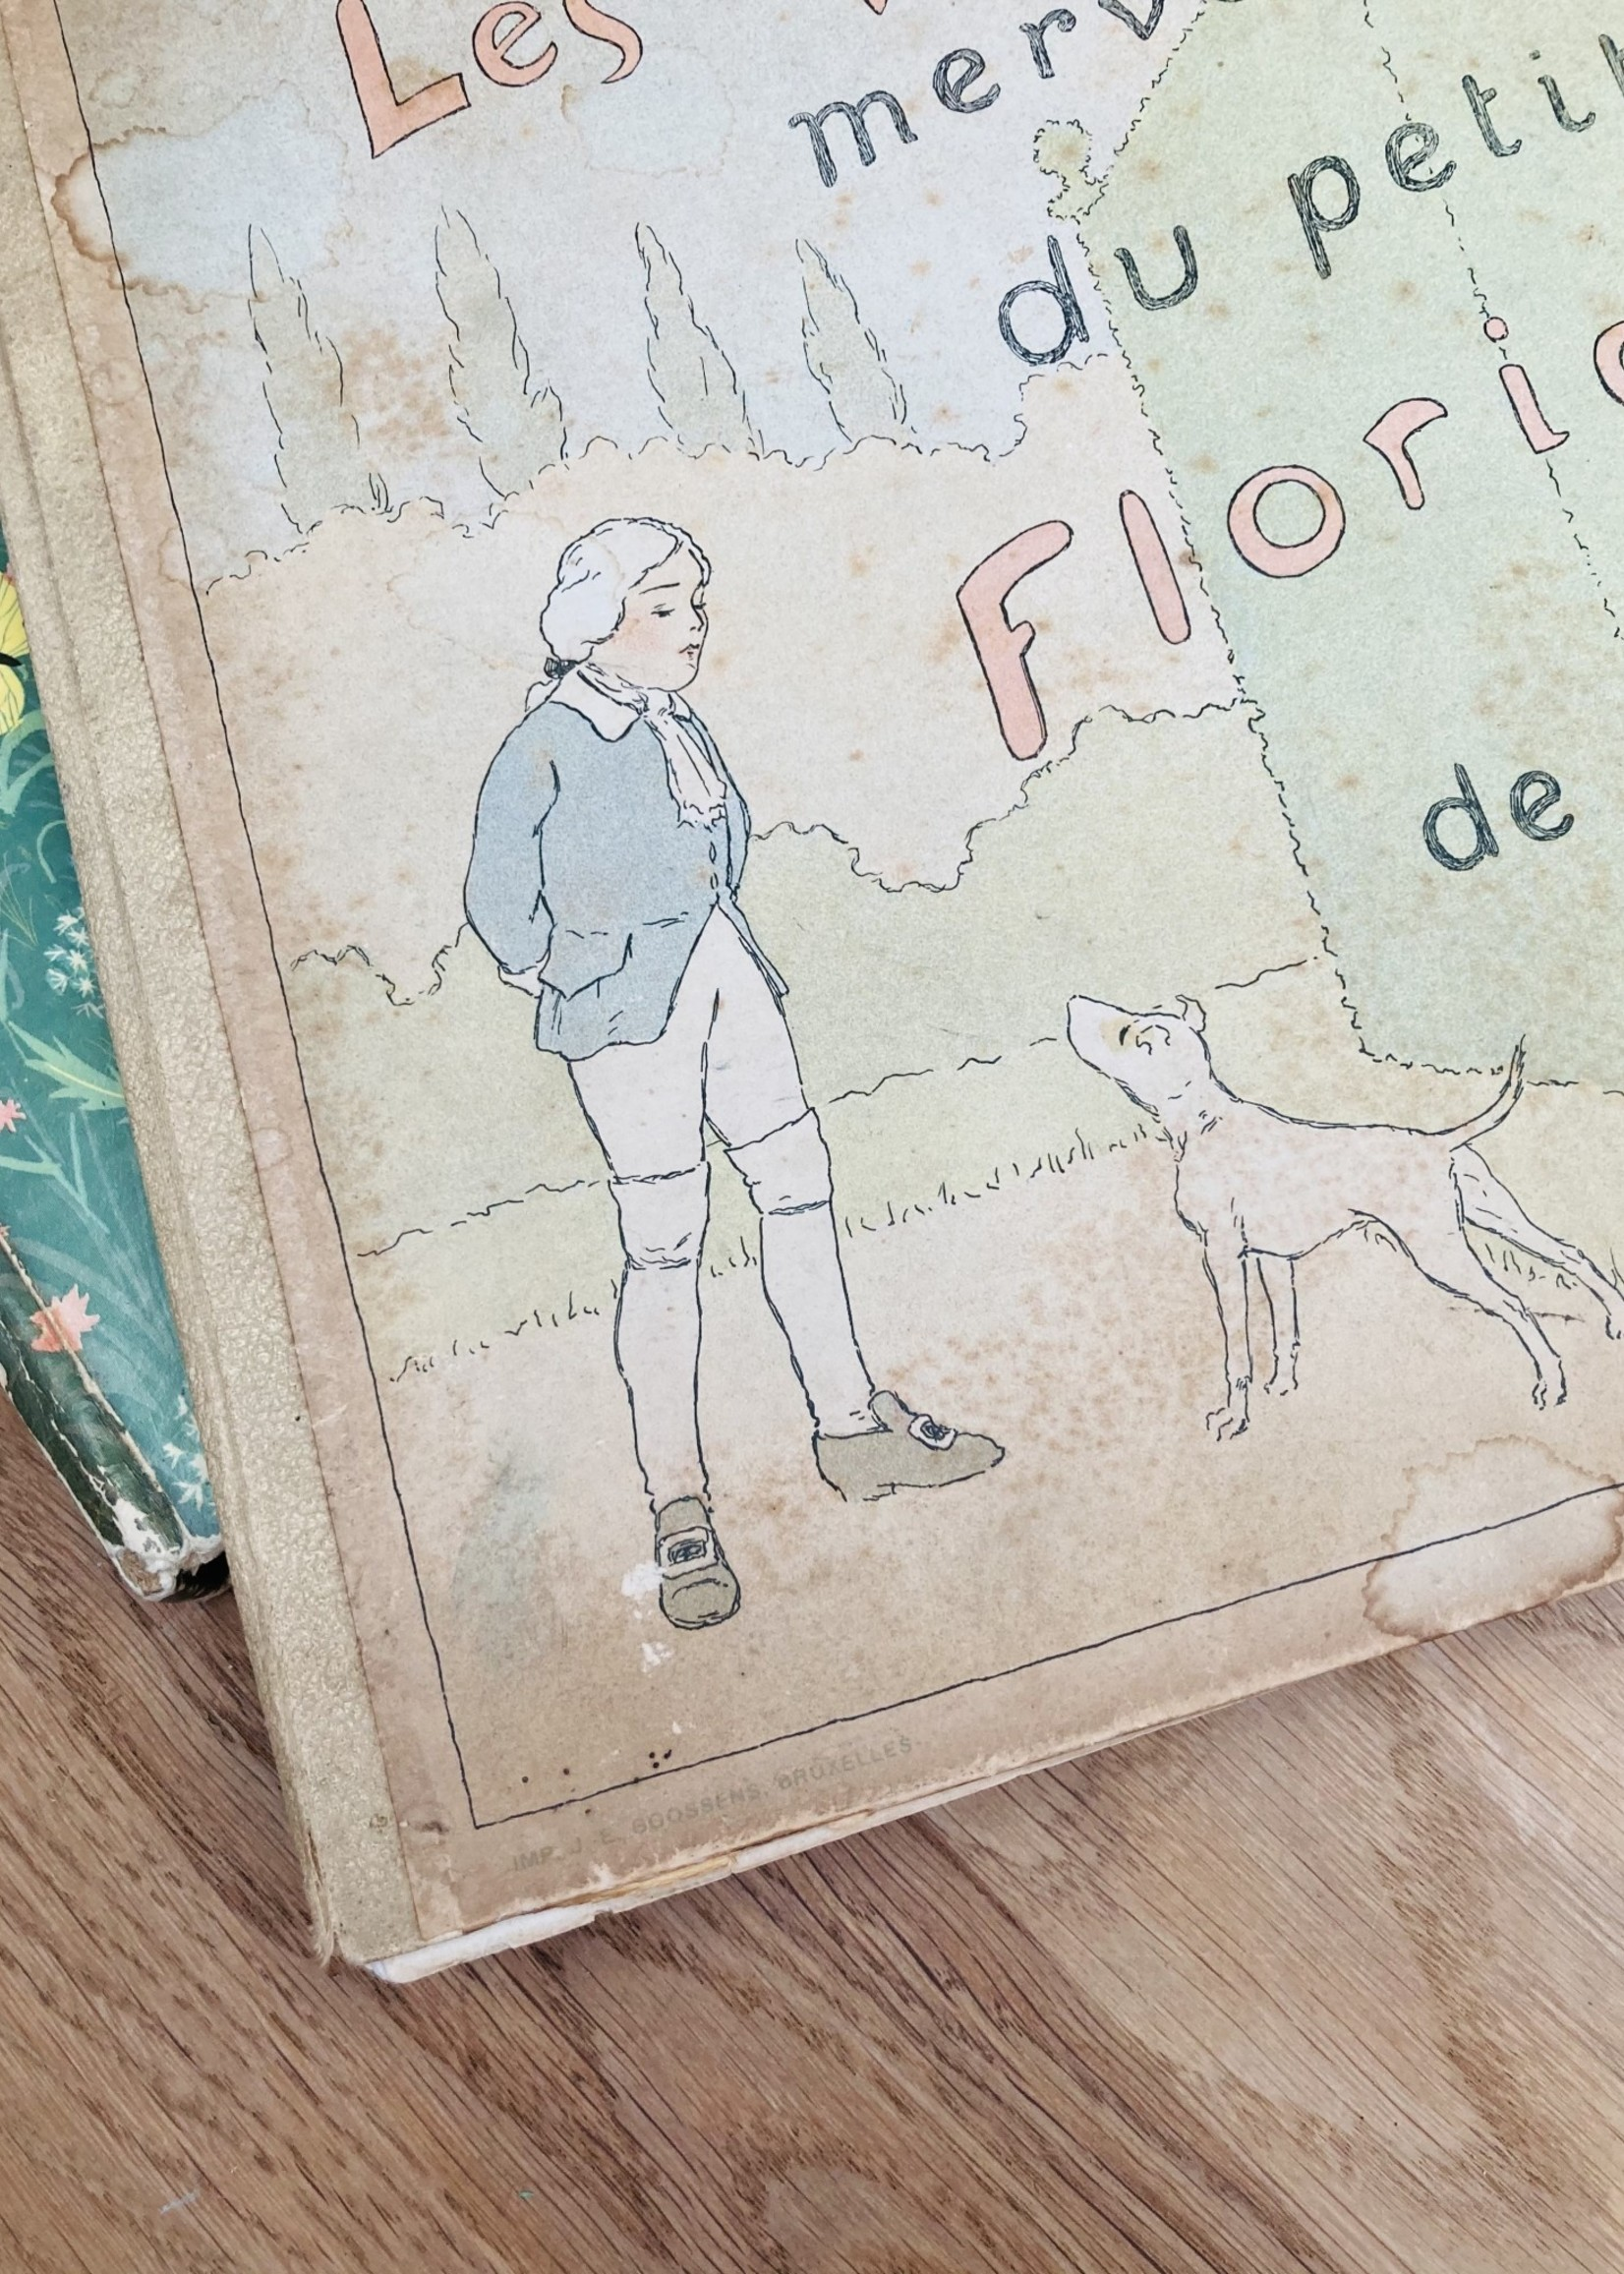 History The wonderful adventures of Floridor and Carabi 1915